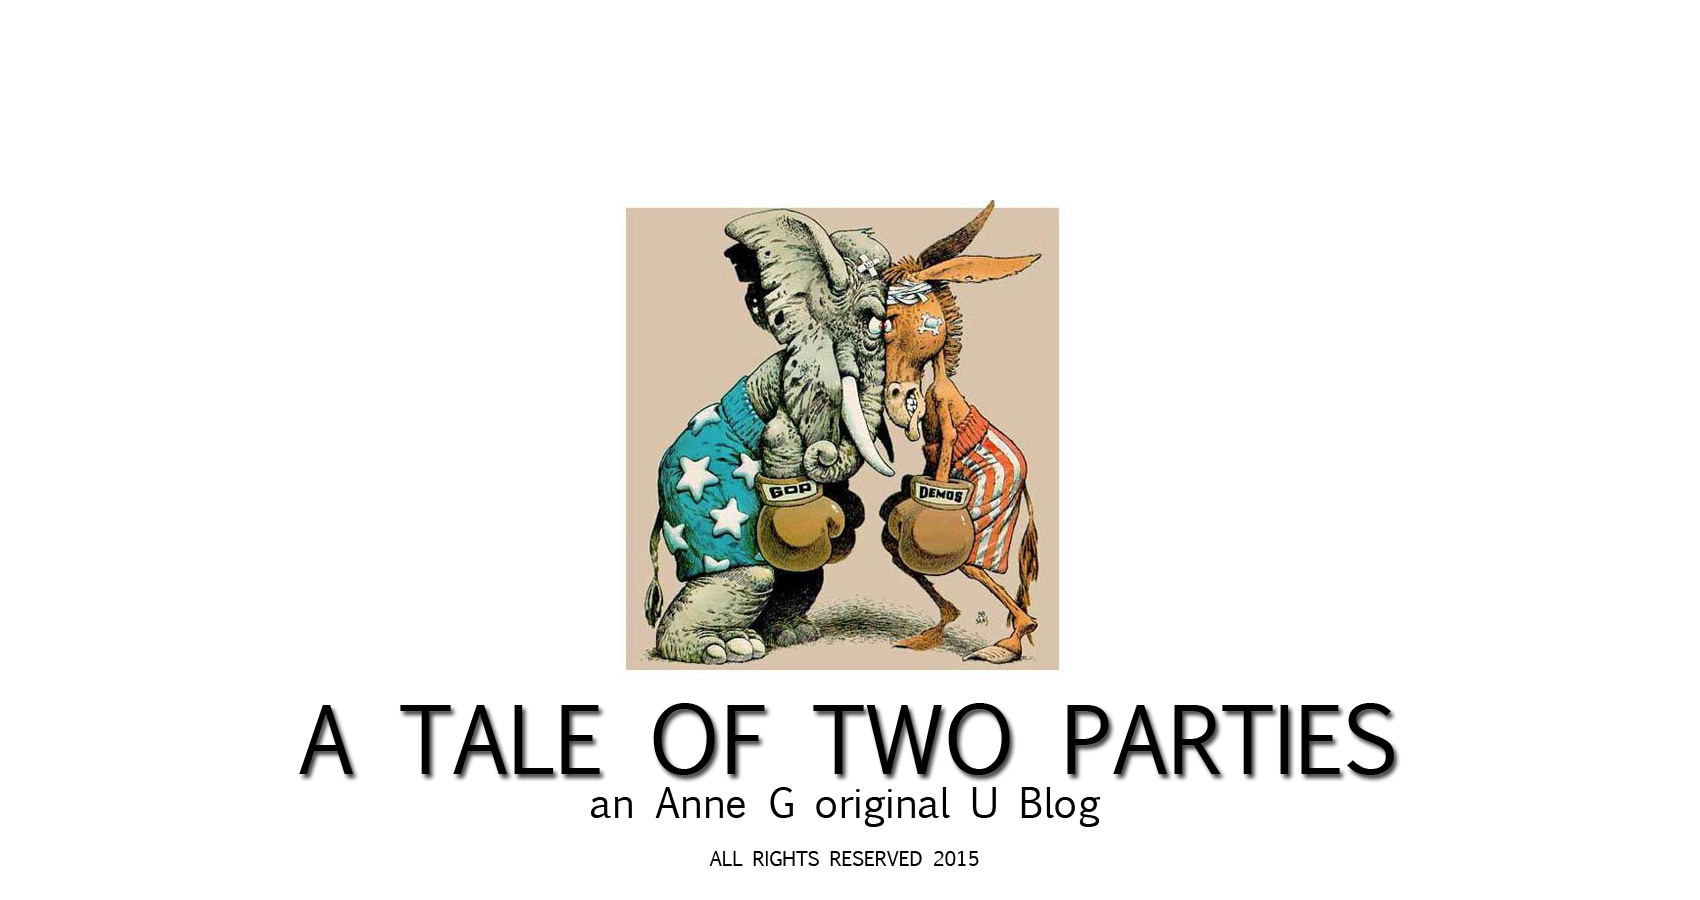 spillwords.com A Tale of Two Parties by Anne G